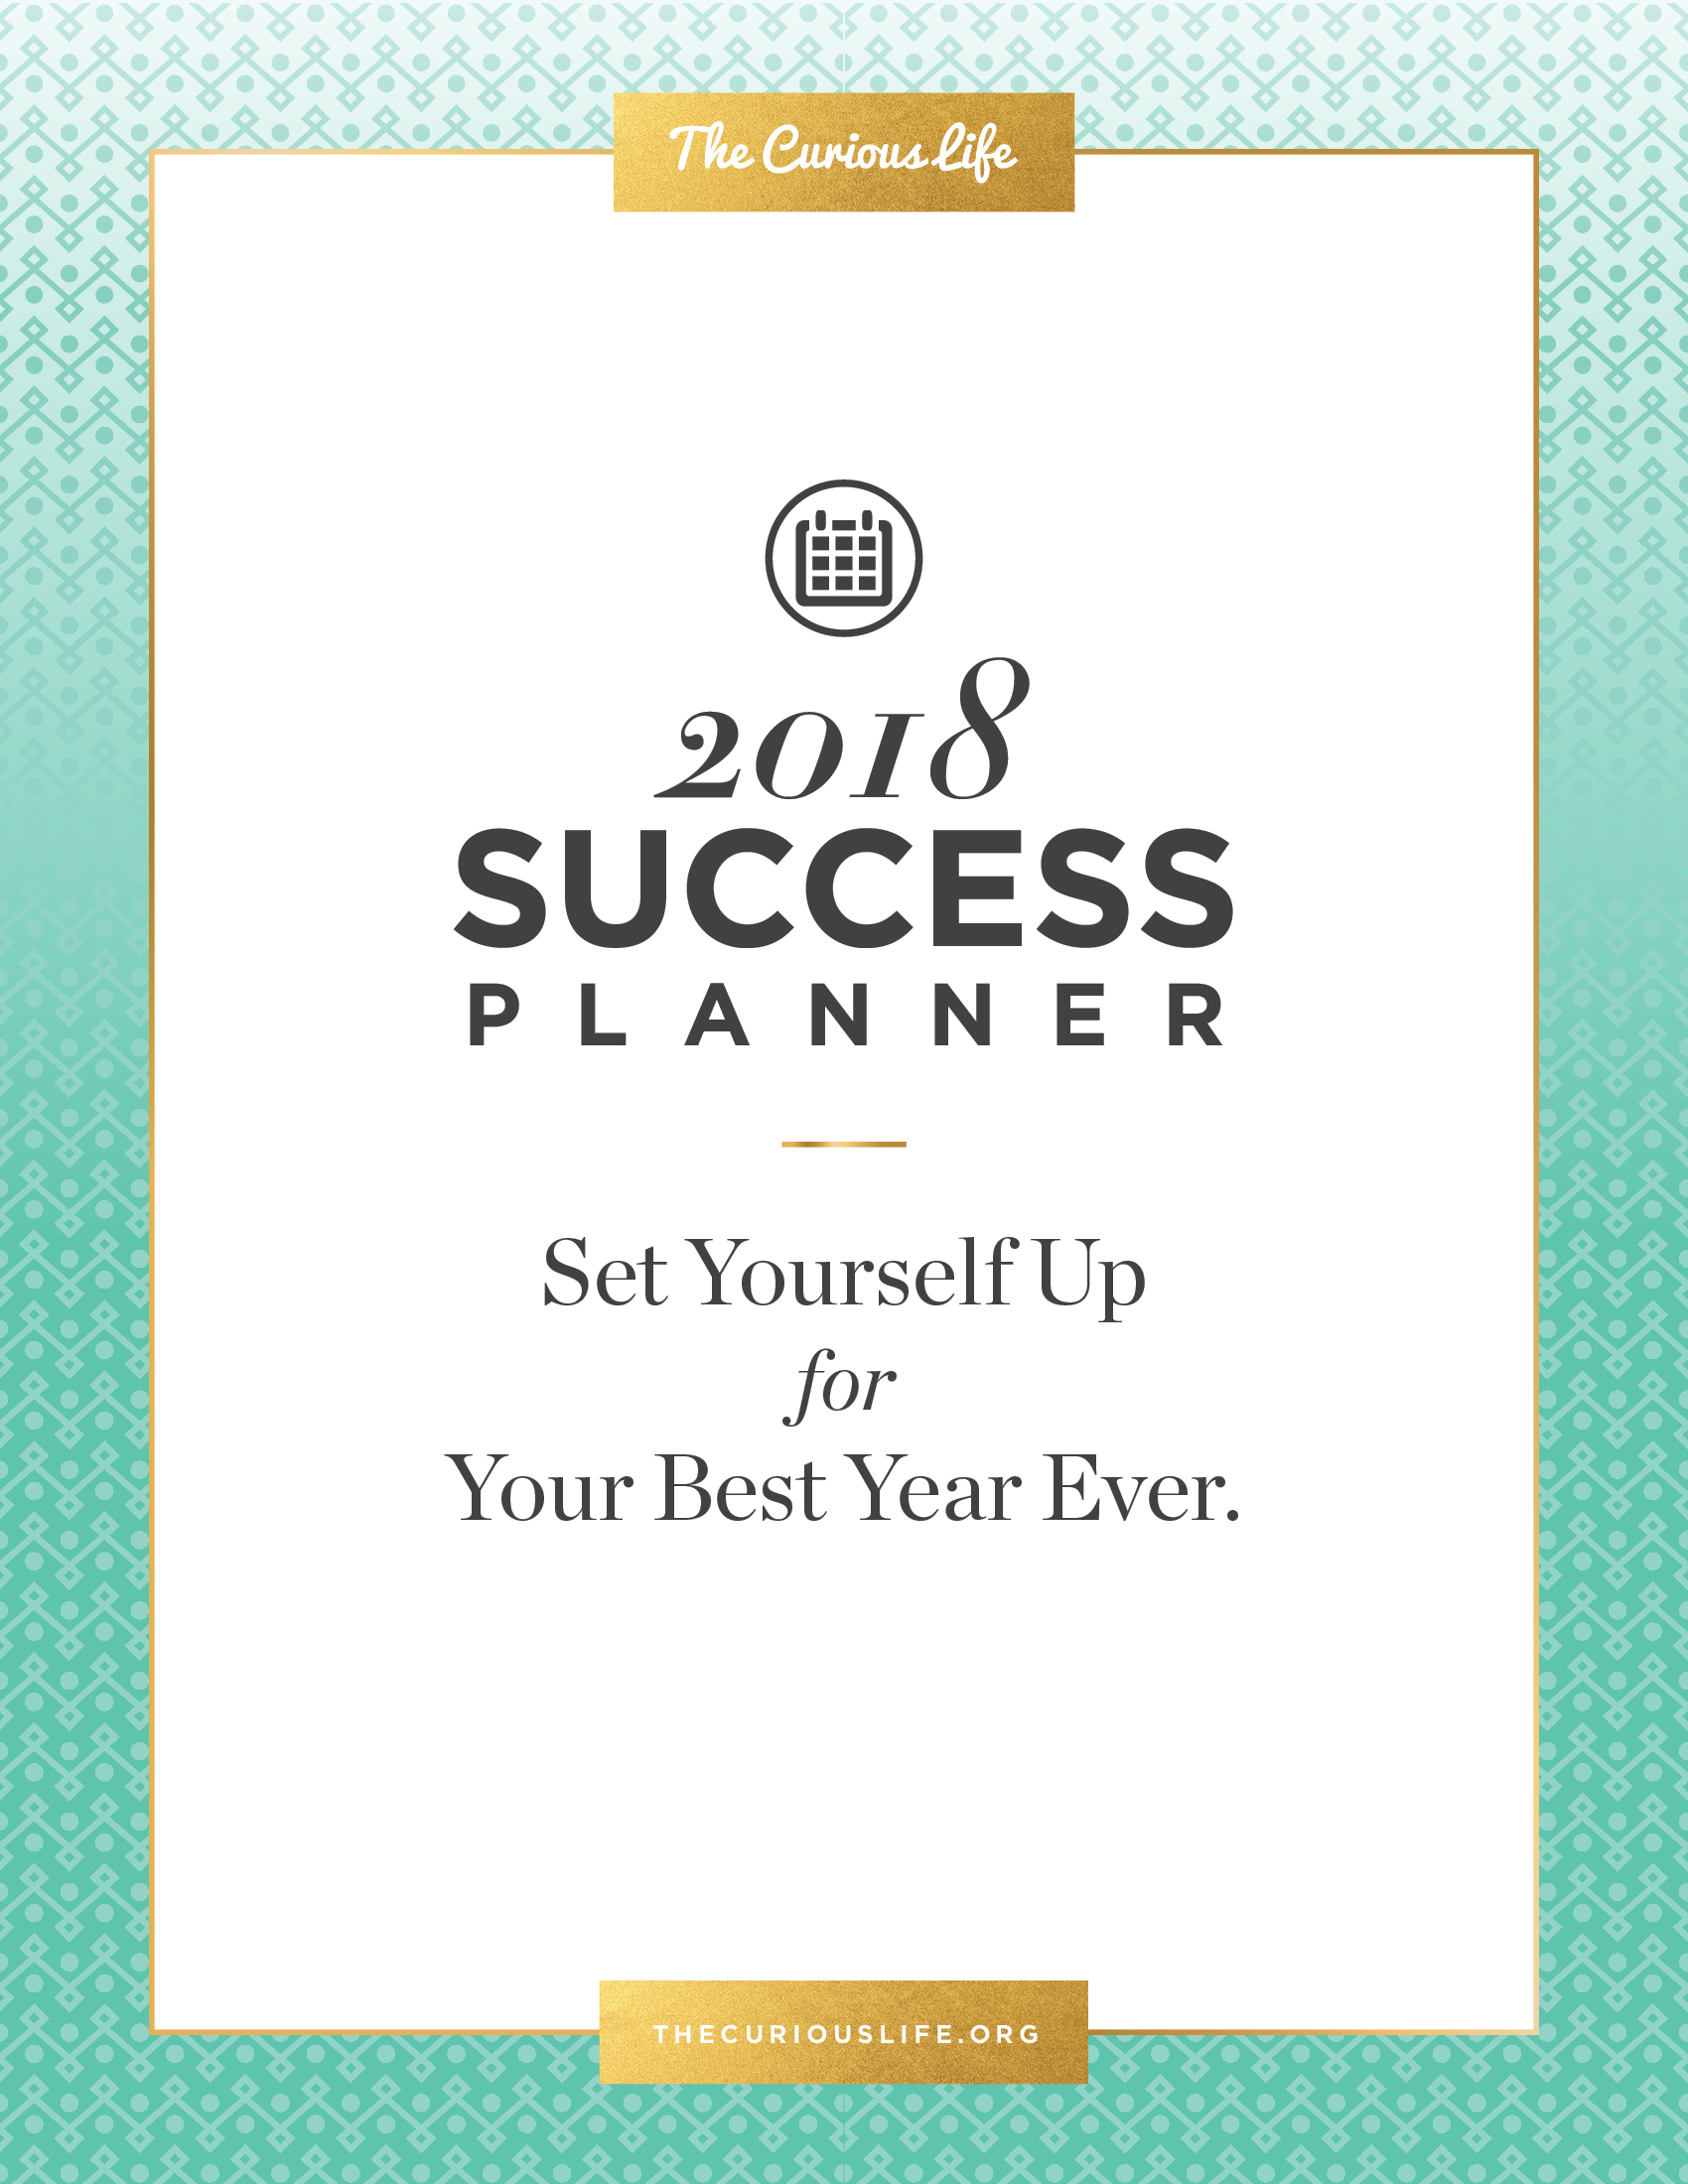 The 2018 Success Planner The Curious Life